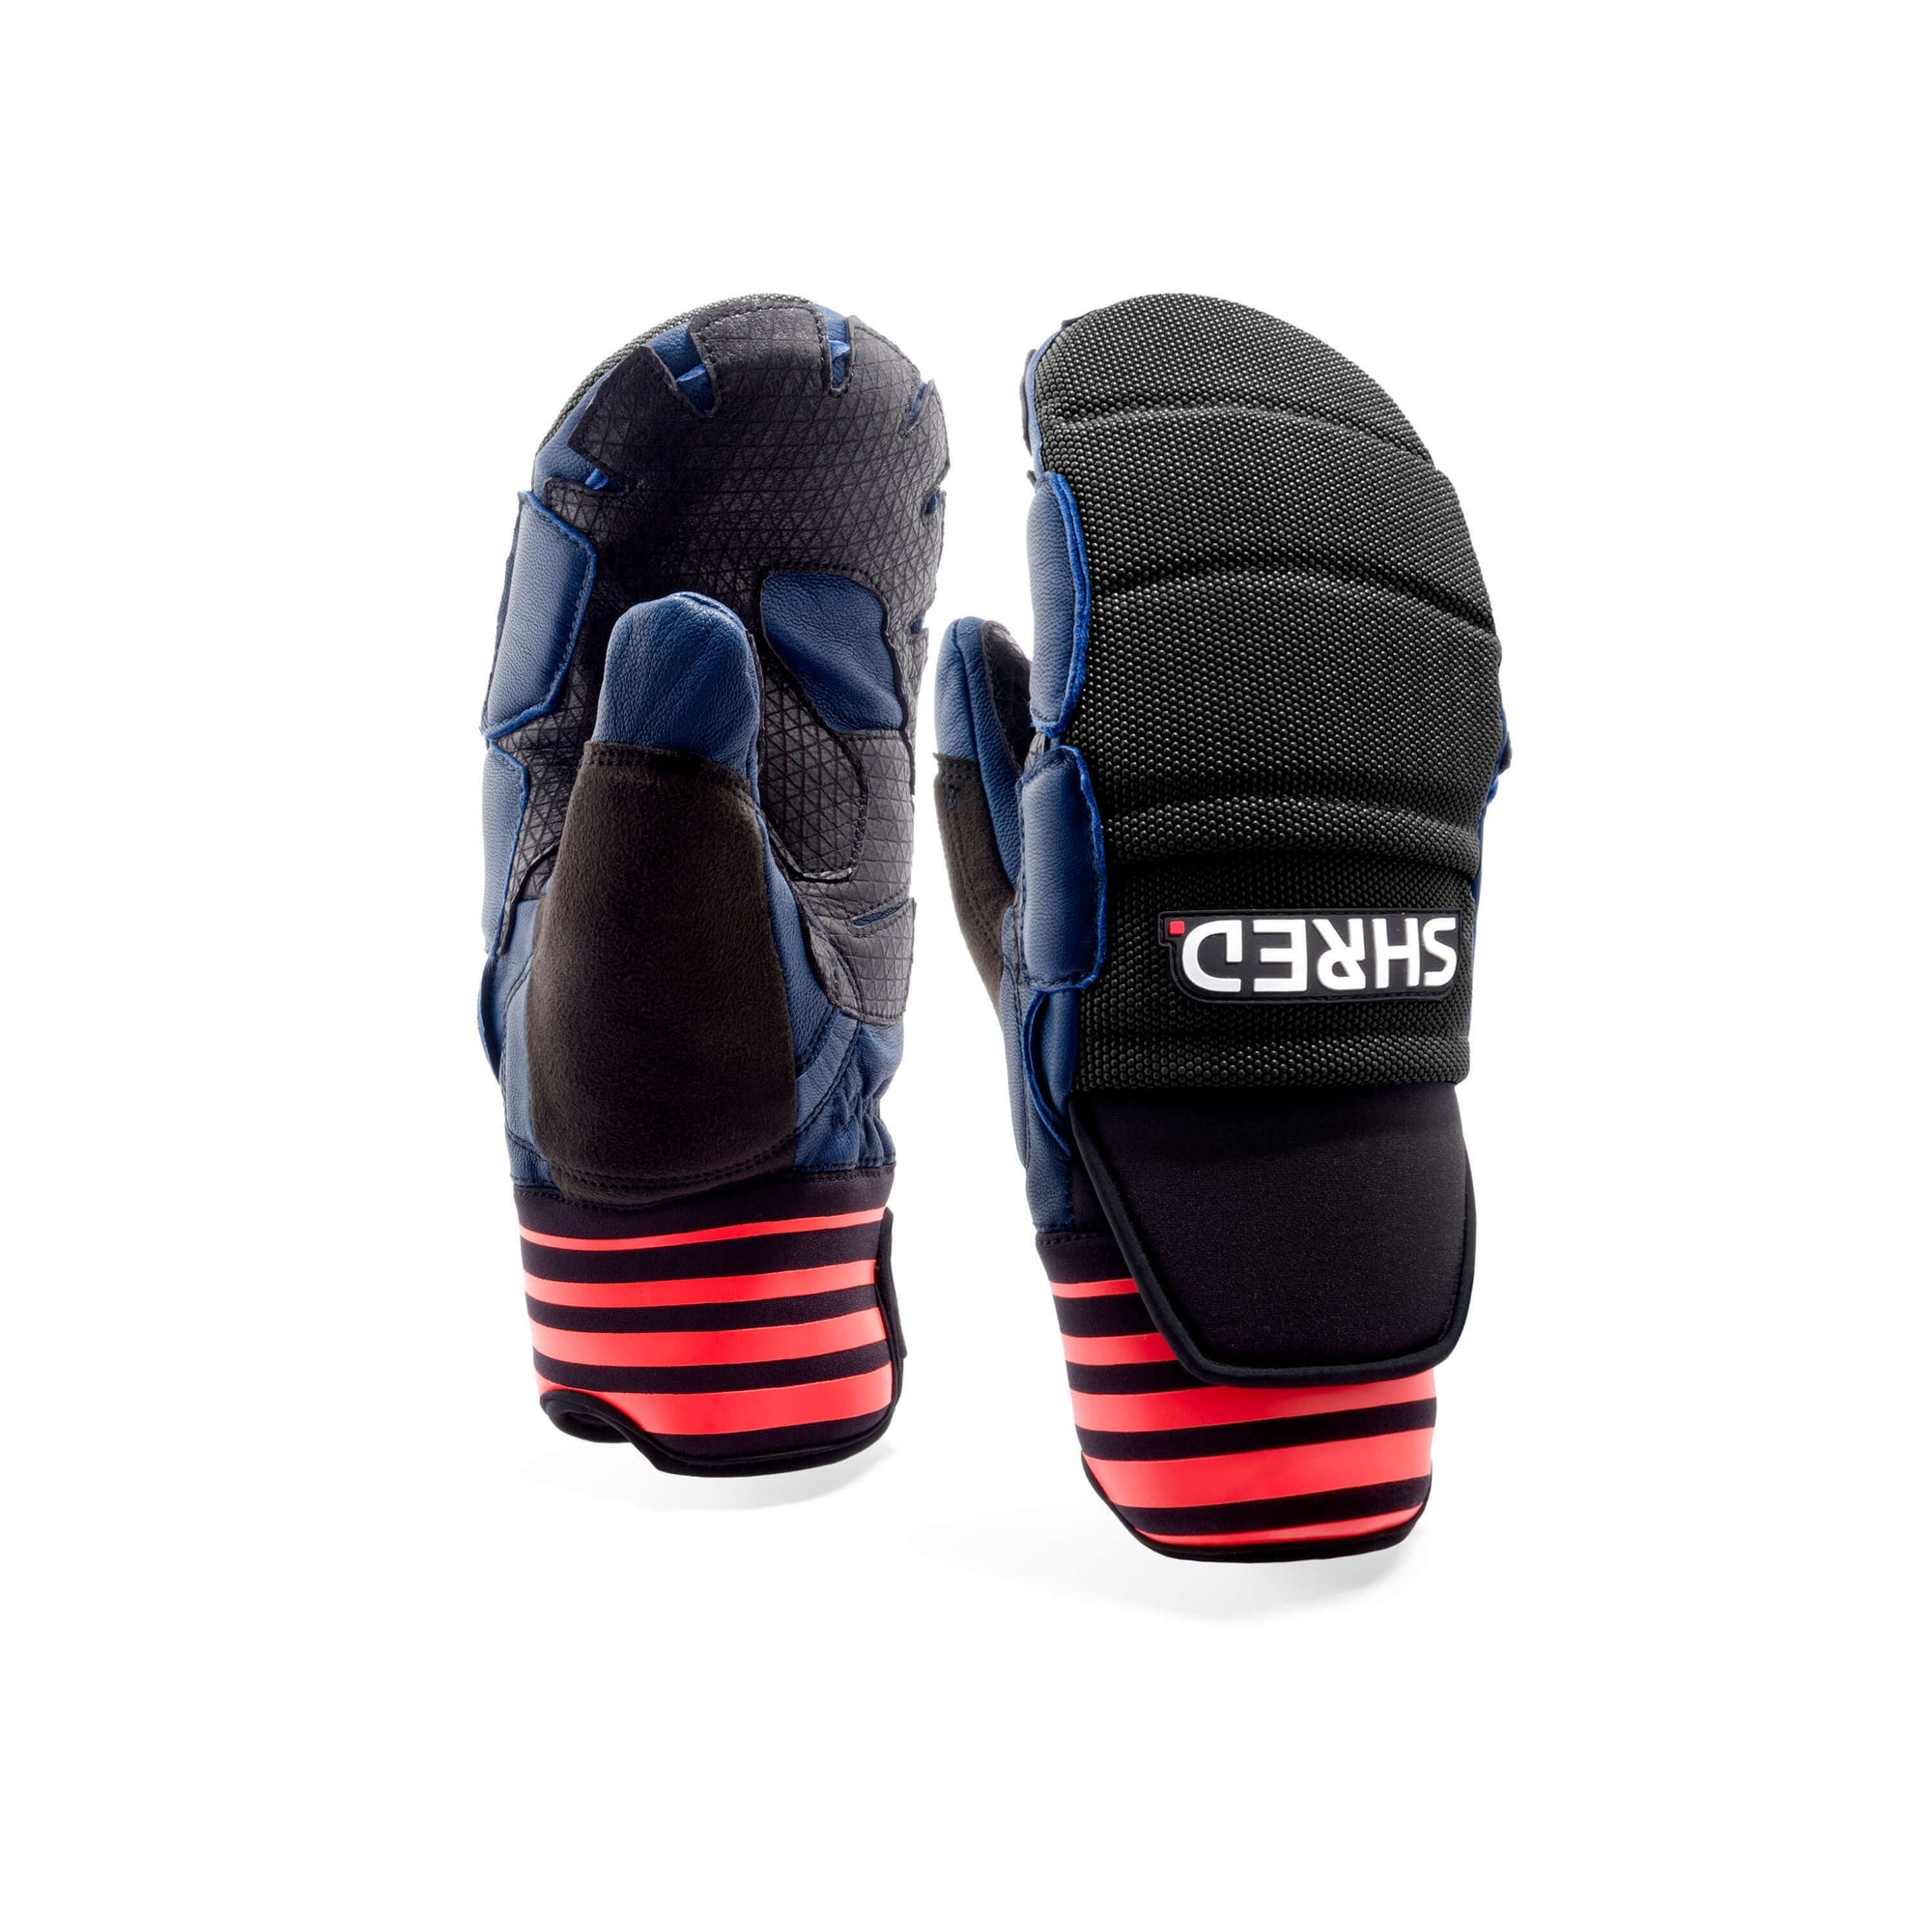 Ski Race Protective Mittens Navy/Rust - Protective Gloves